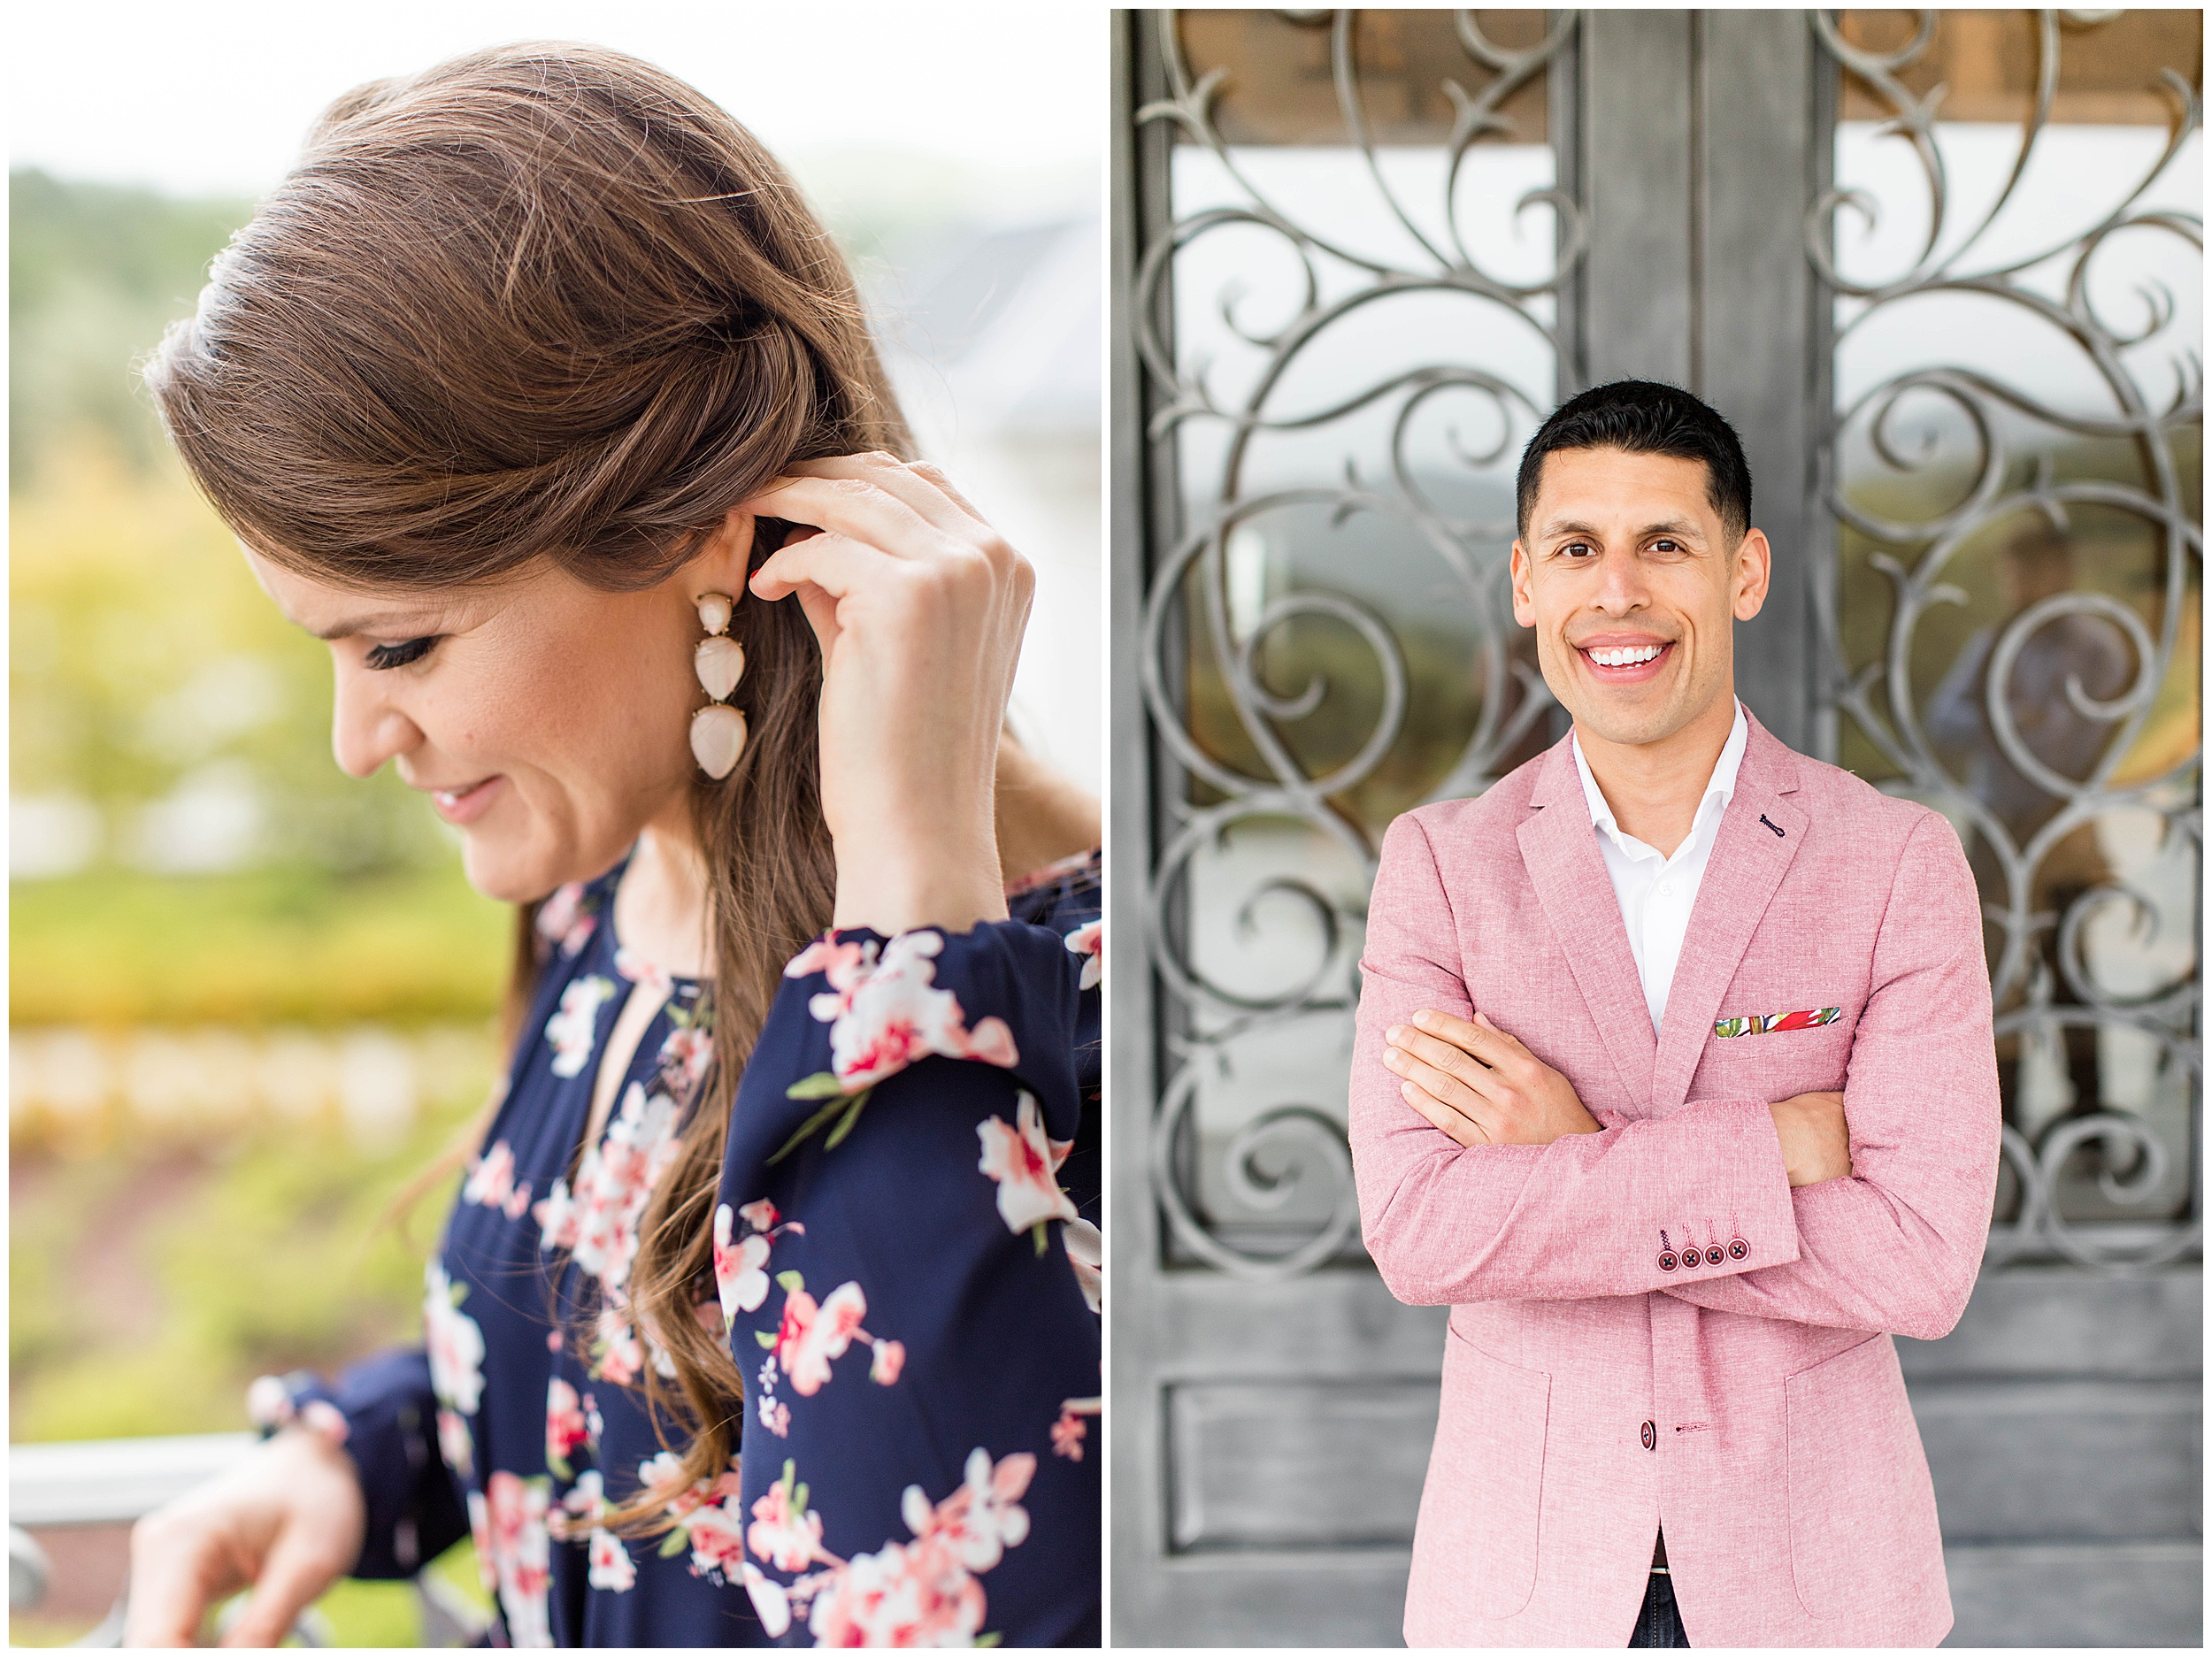 Willow Heights Mansion-San Jose Wedding Photographer-Engagement Session-Angela Sue Photography_0012.jpg